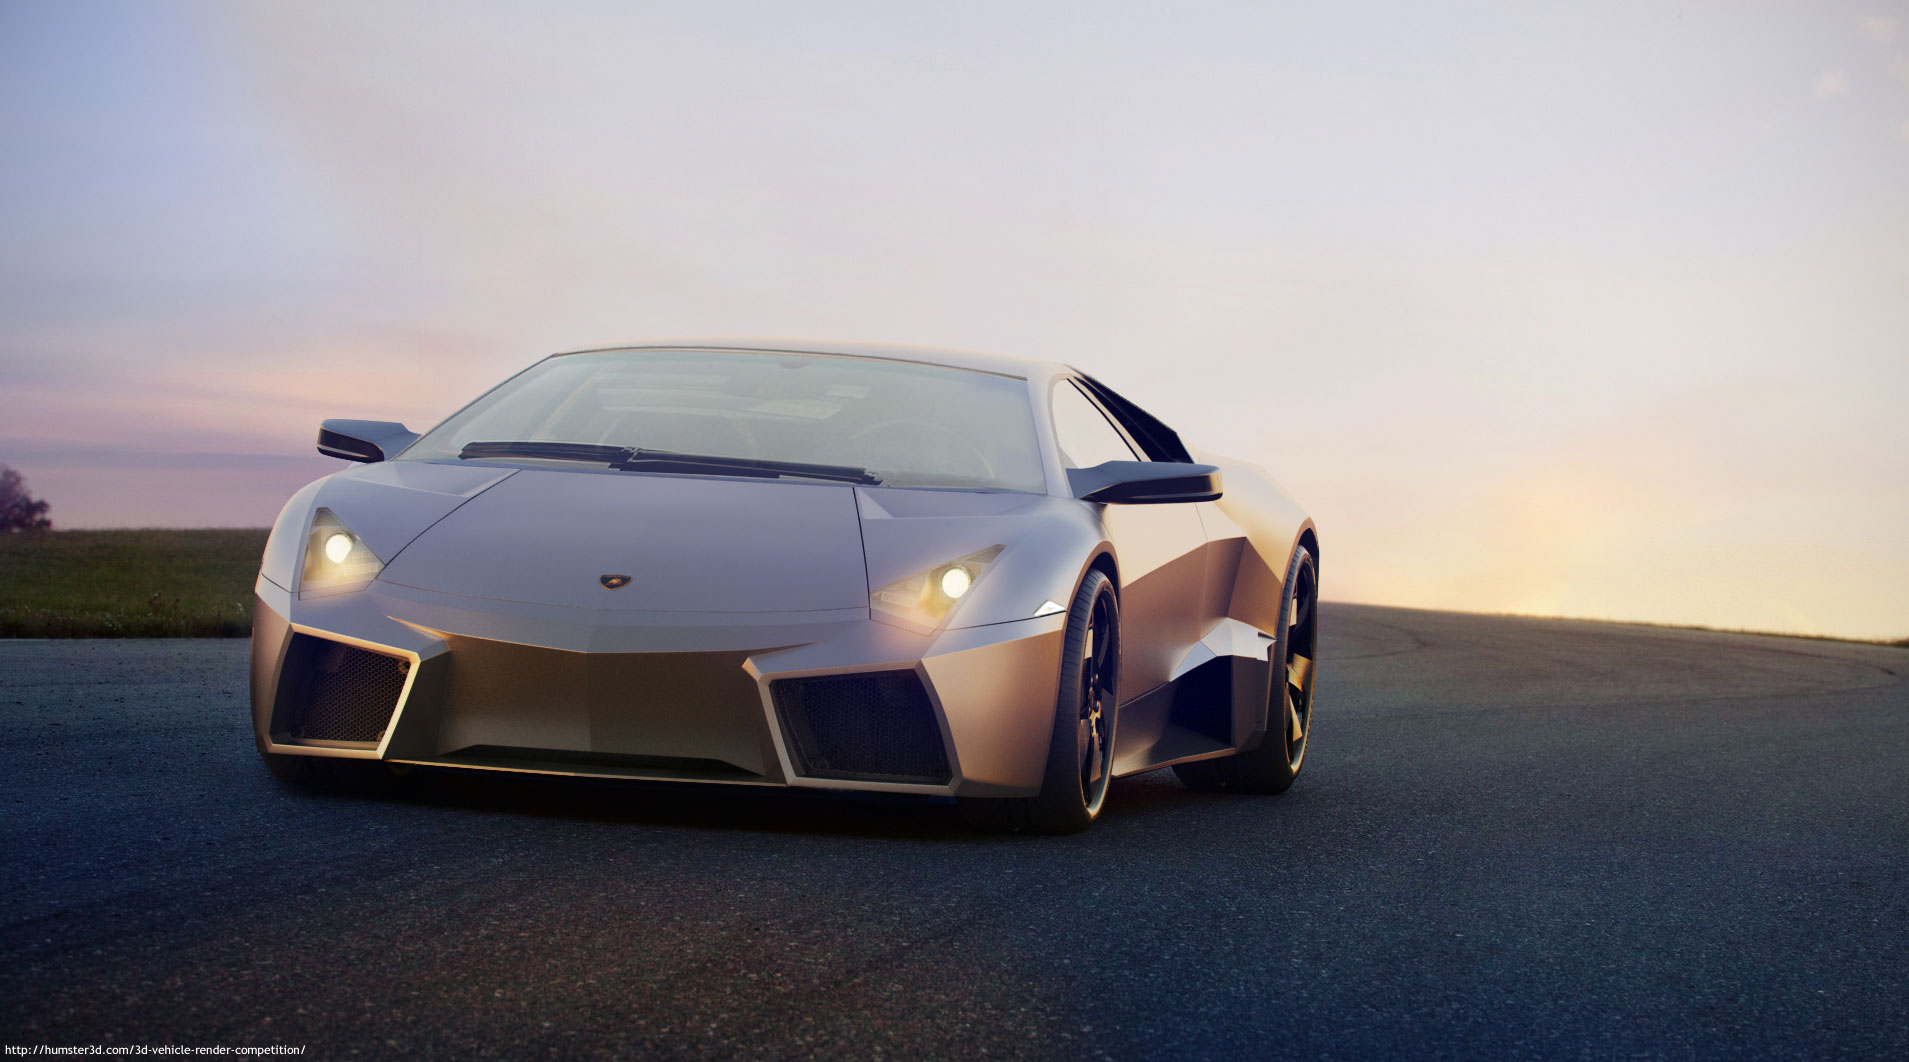 Lamborgini Reventon sunset compozition